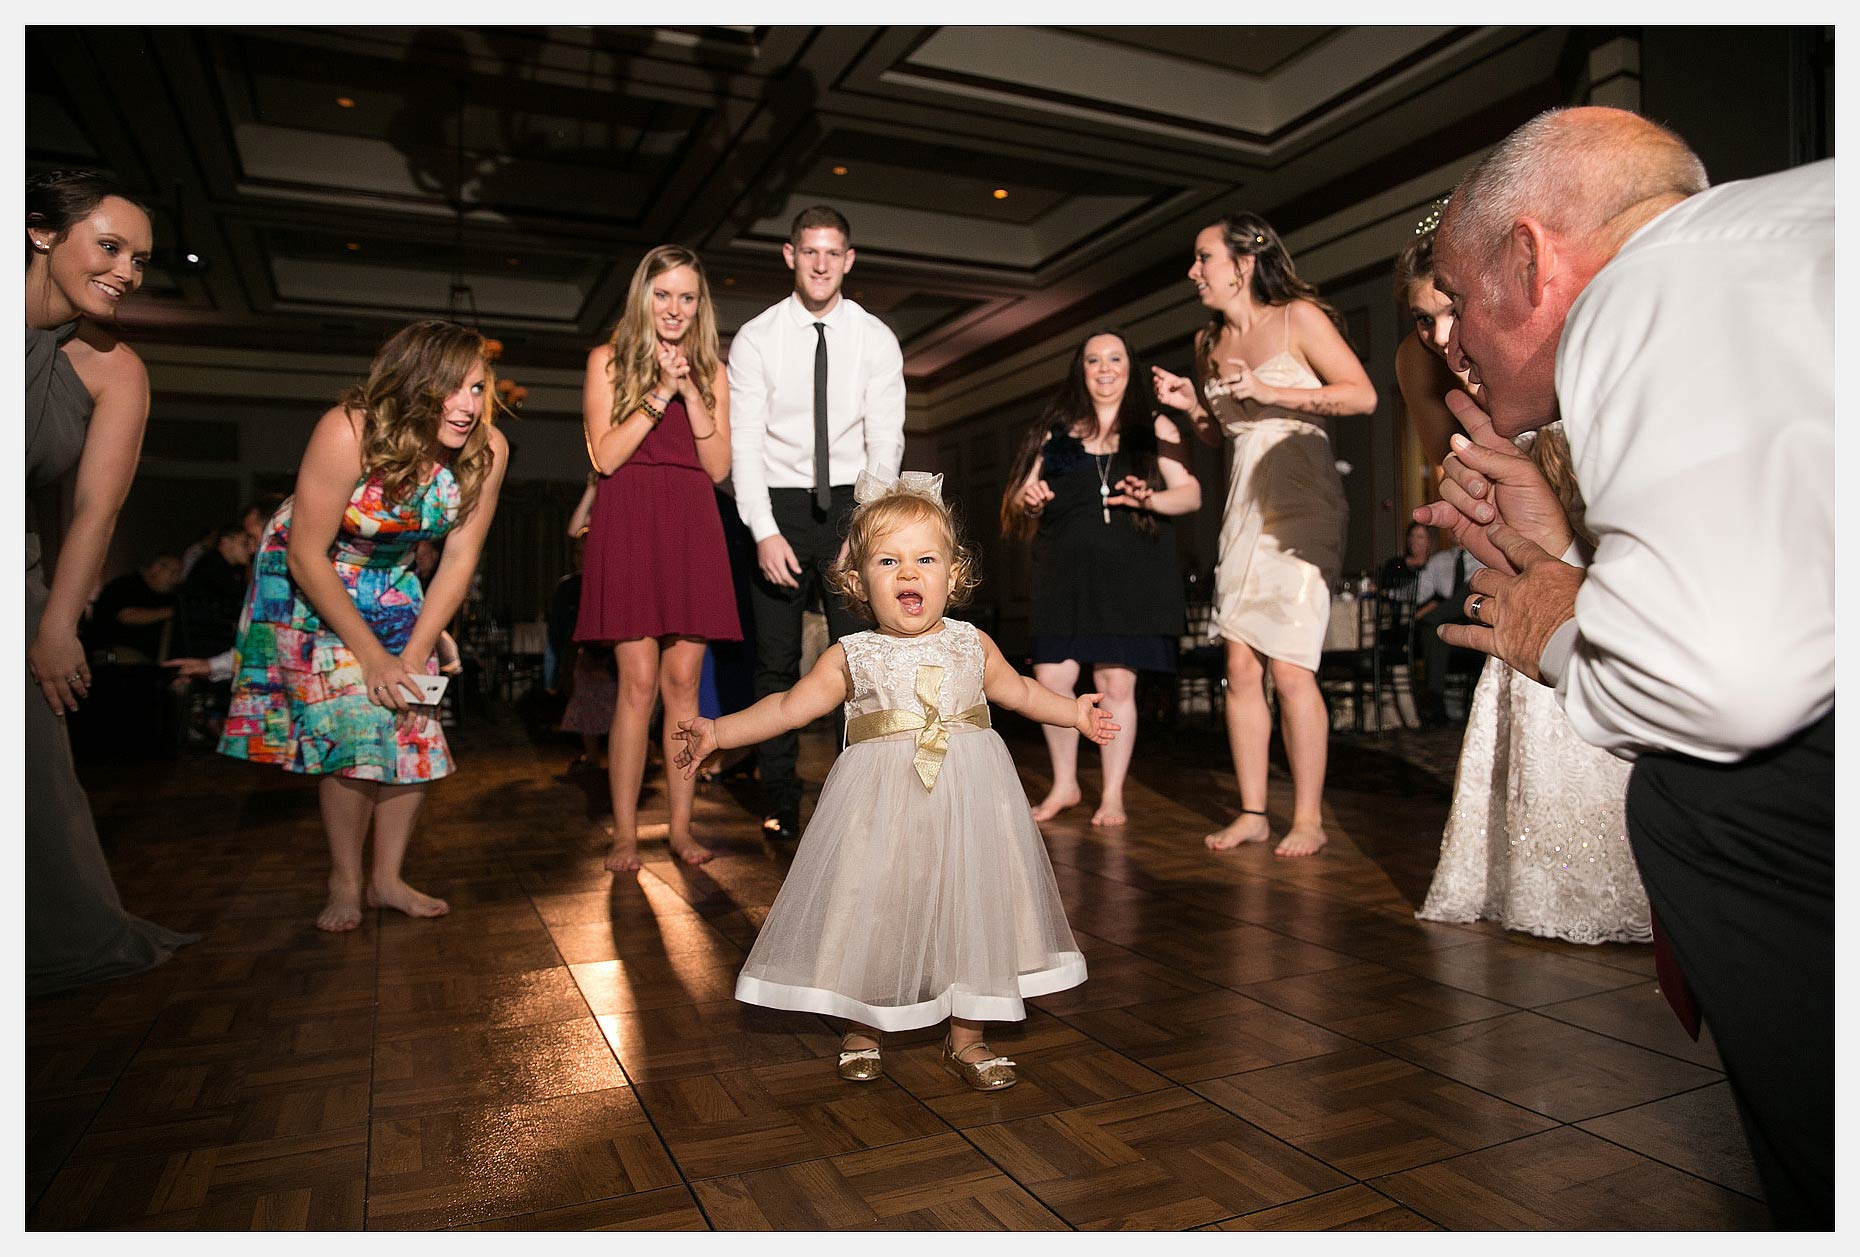 Madison-Carver-Wedding-by-Stephen-Masker-Photography-0120